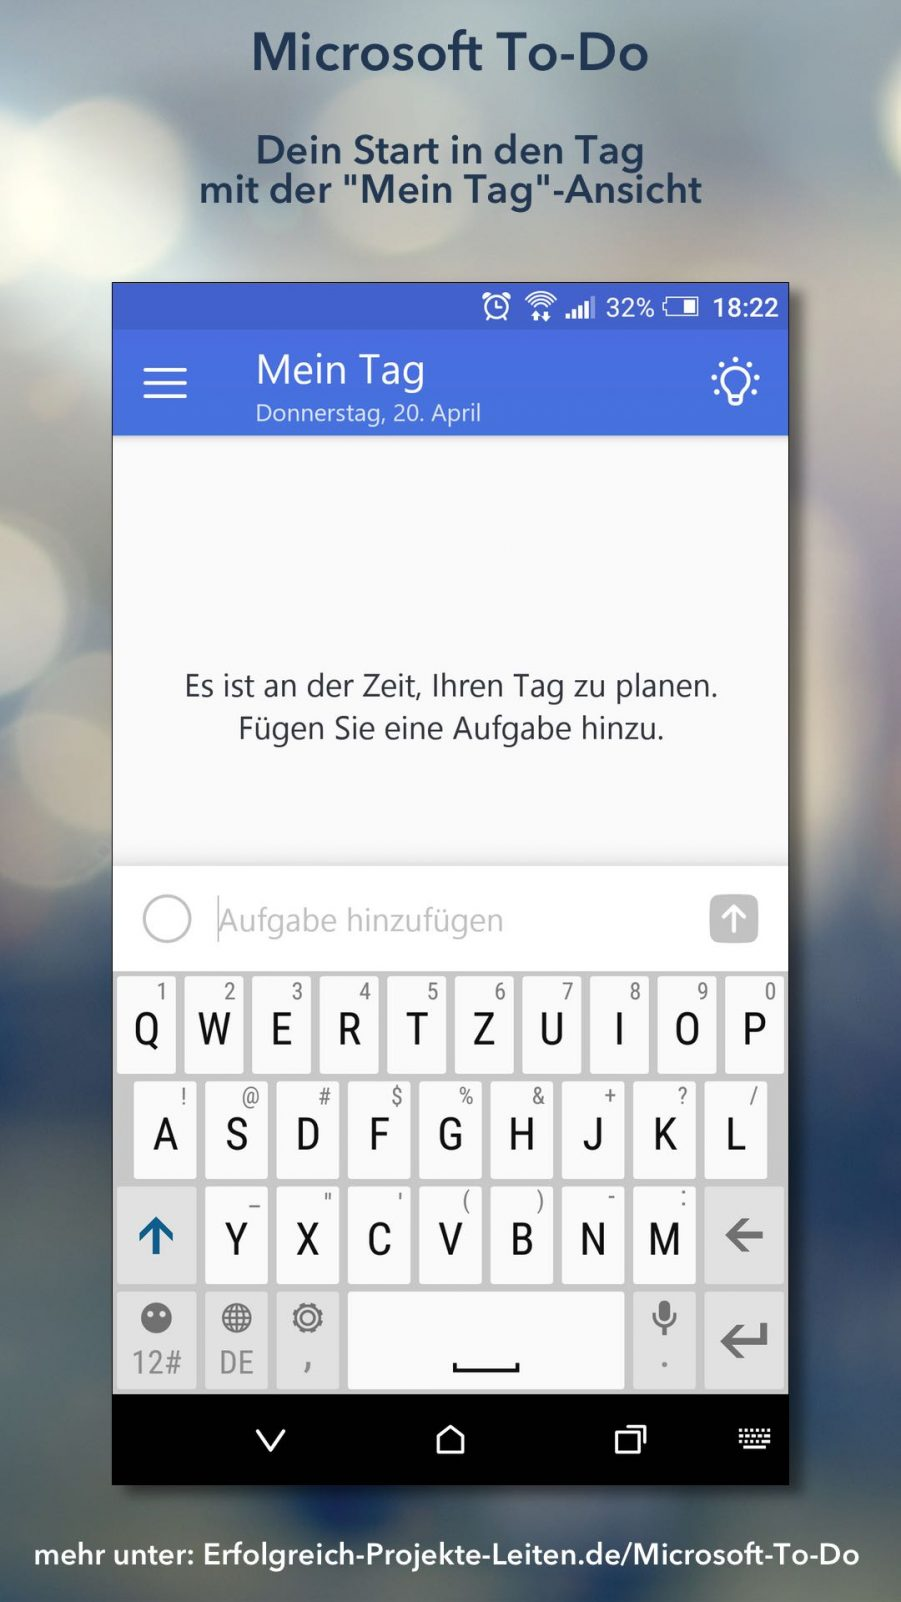 Microsoft To-Do - Mein Tag Ansicht